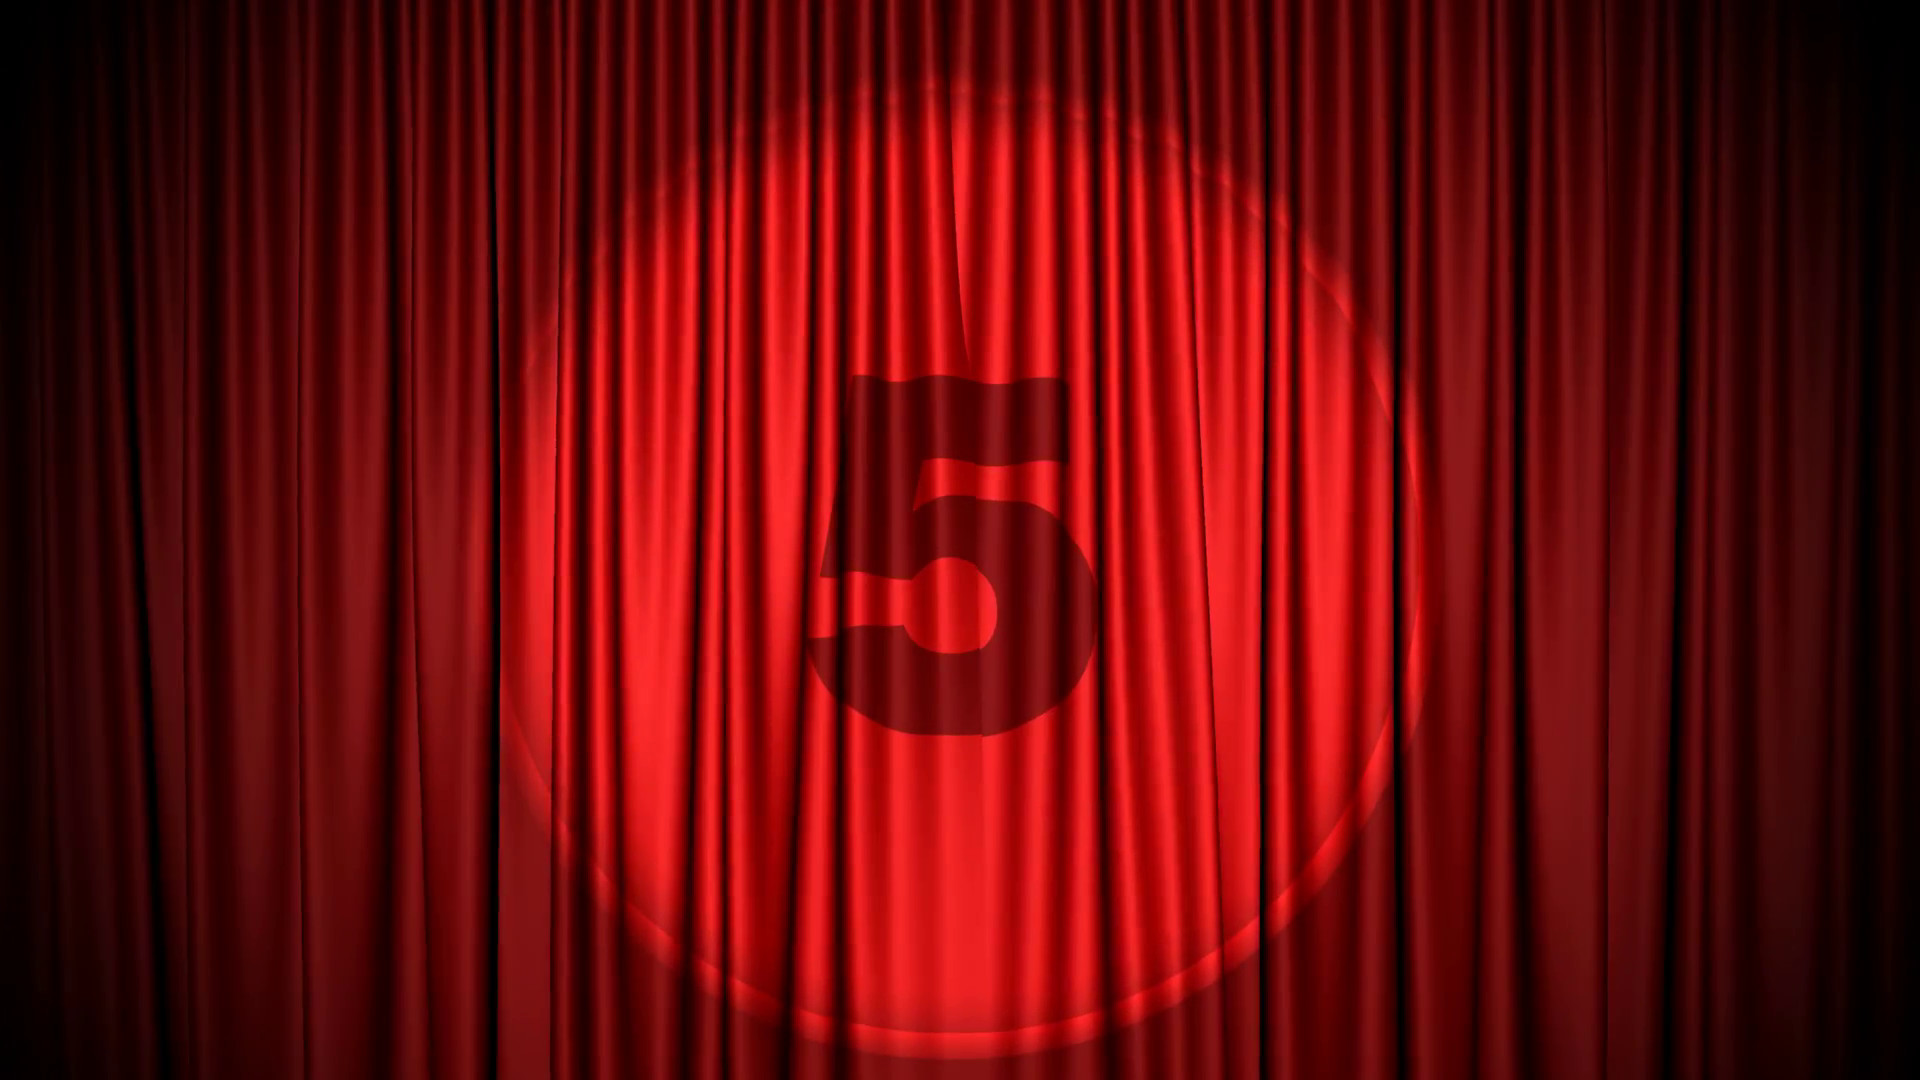 1920x1080 Red Cinema/theater type curtain with numbers 5 counting down to one  projected on it. Curtain opens to reveal a solid green background Motion  Background - ...